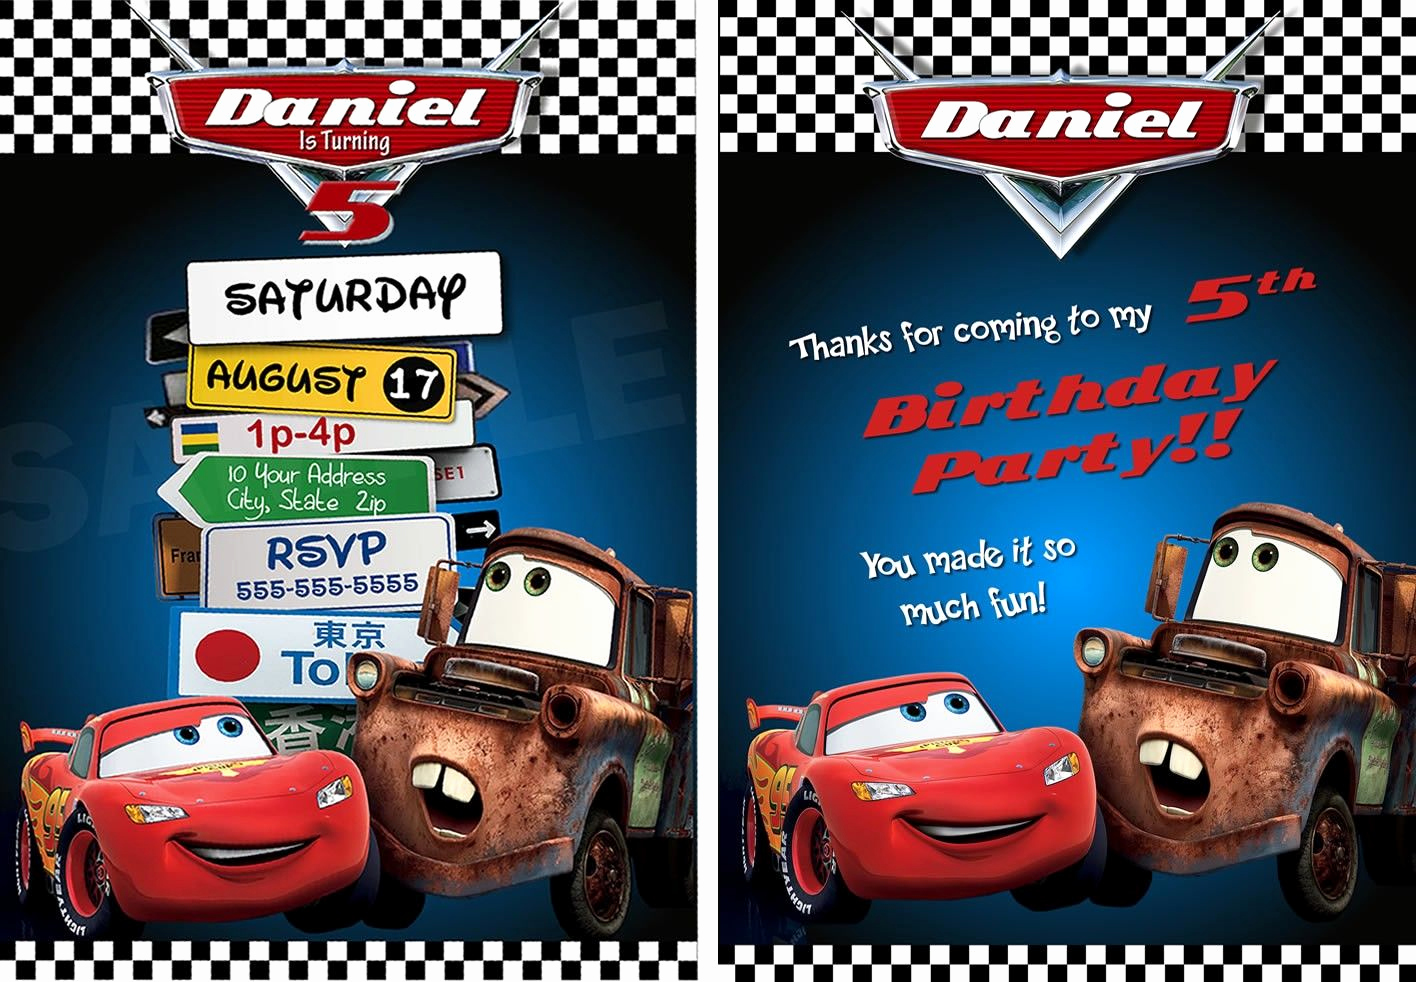 Disney Cars Invitation Template Elegant Cars 2 Invitations Printable Free Cars